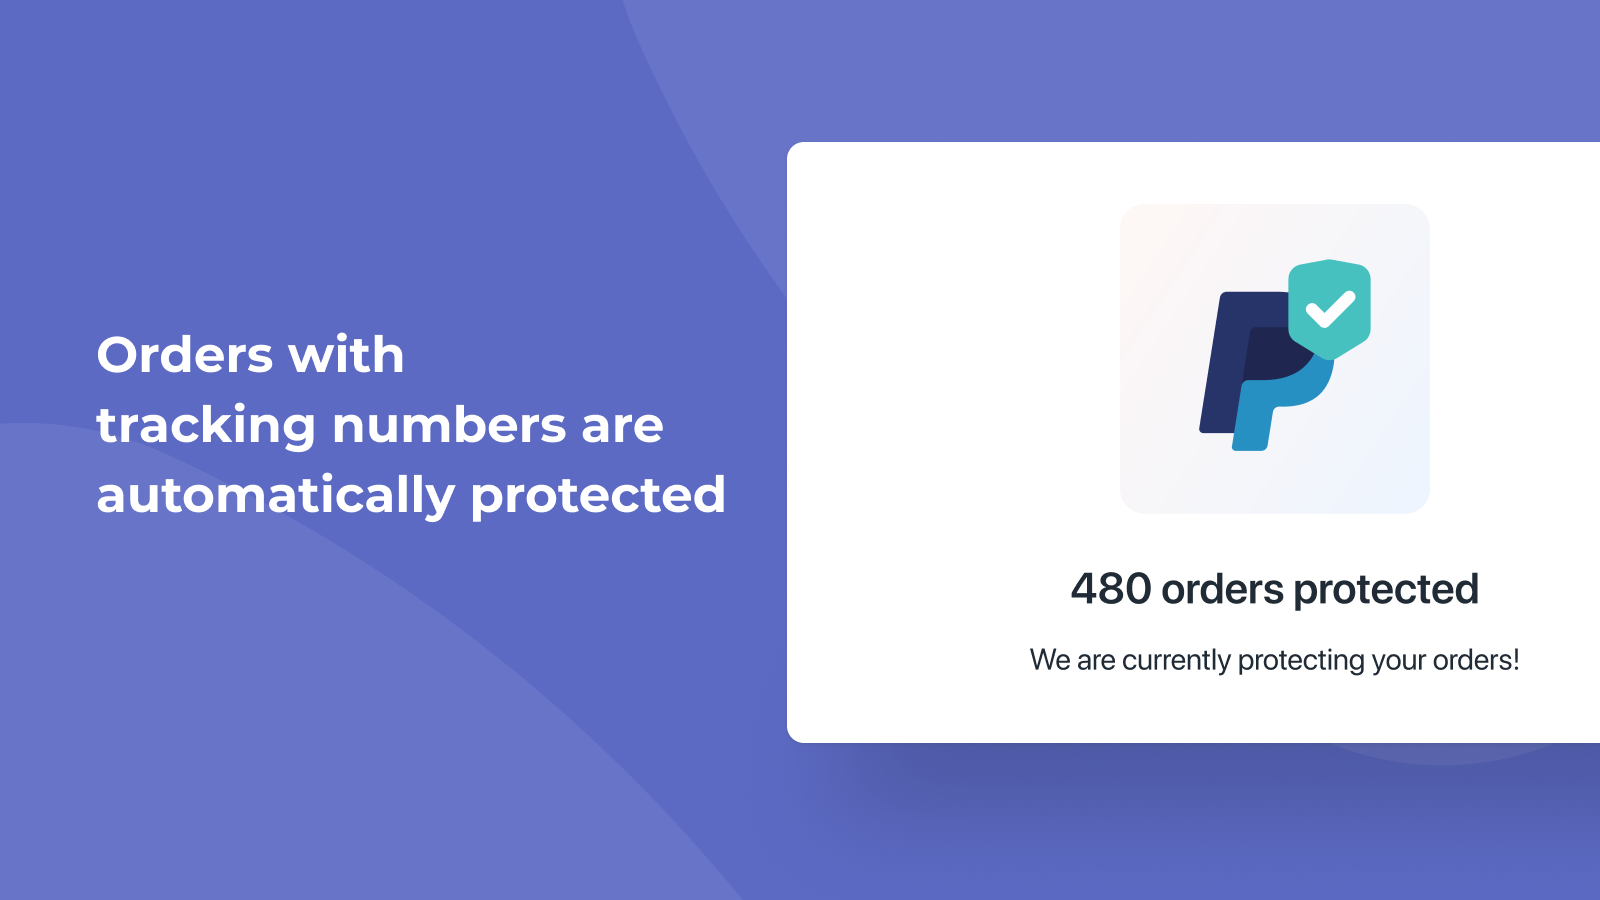 Orders with tracking numbers automatically protected.